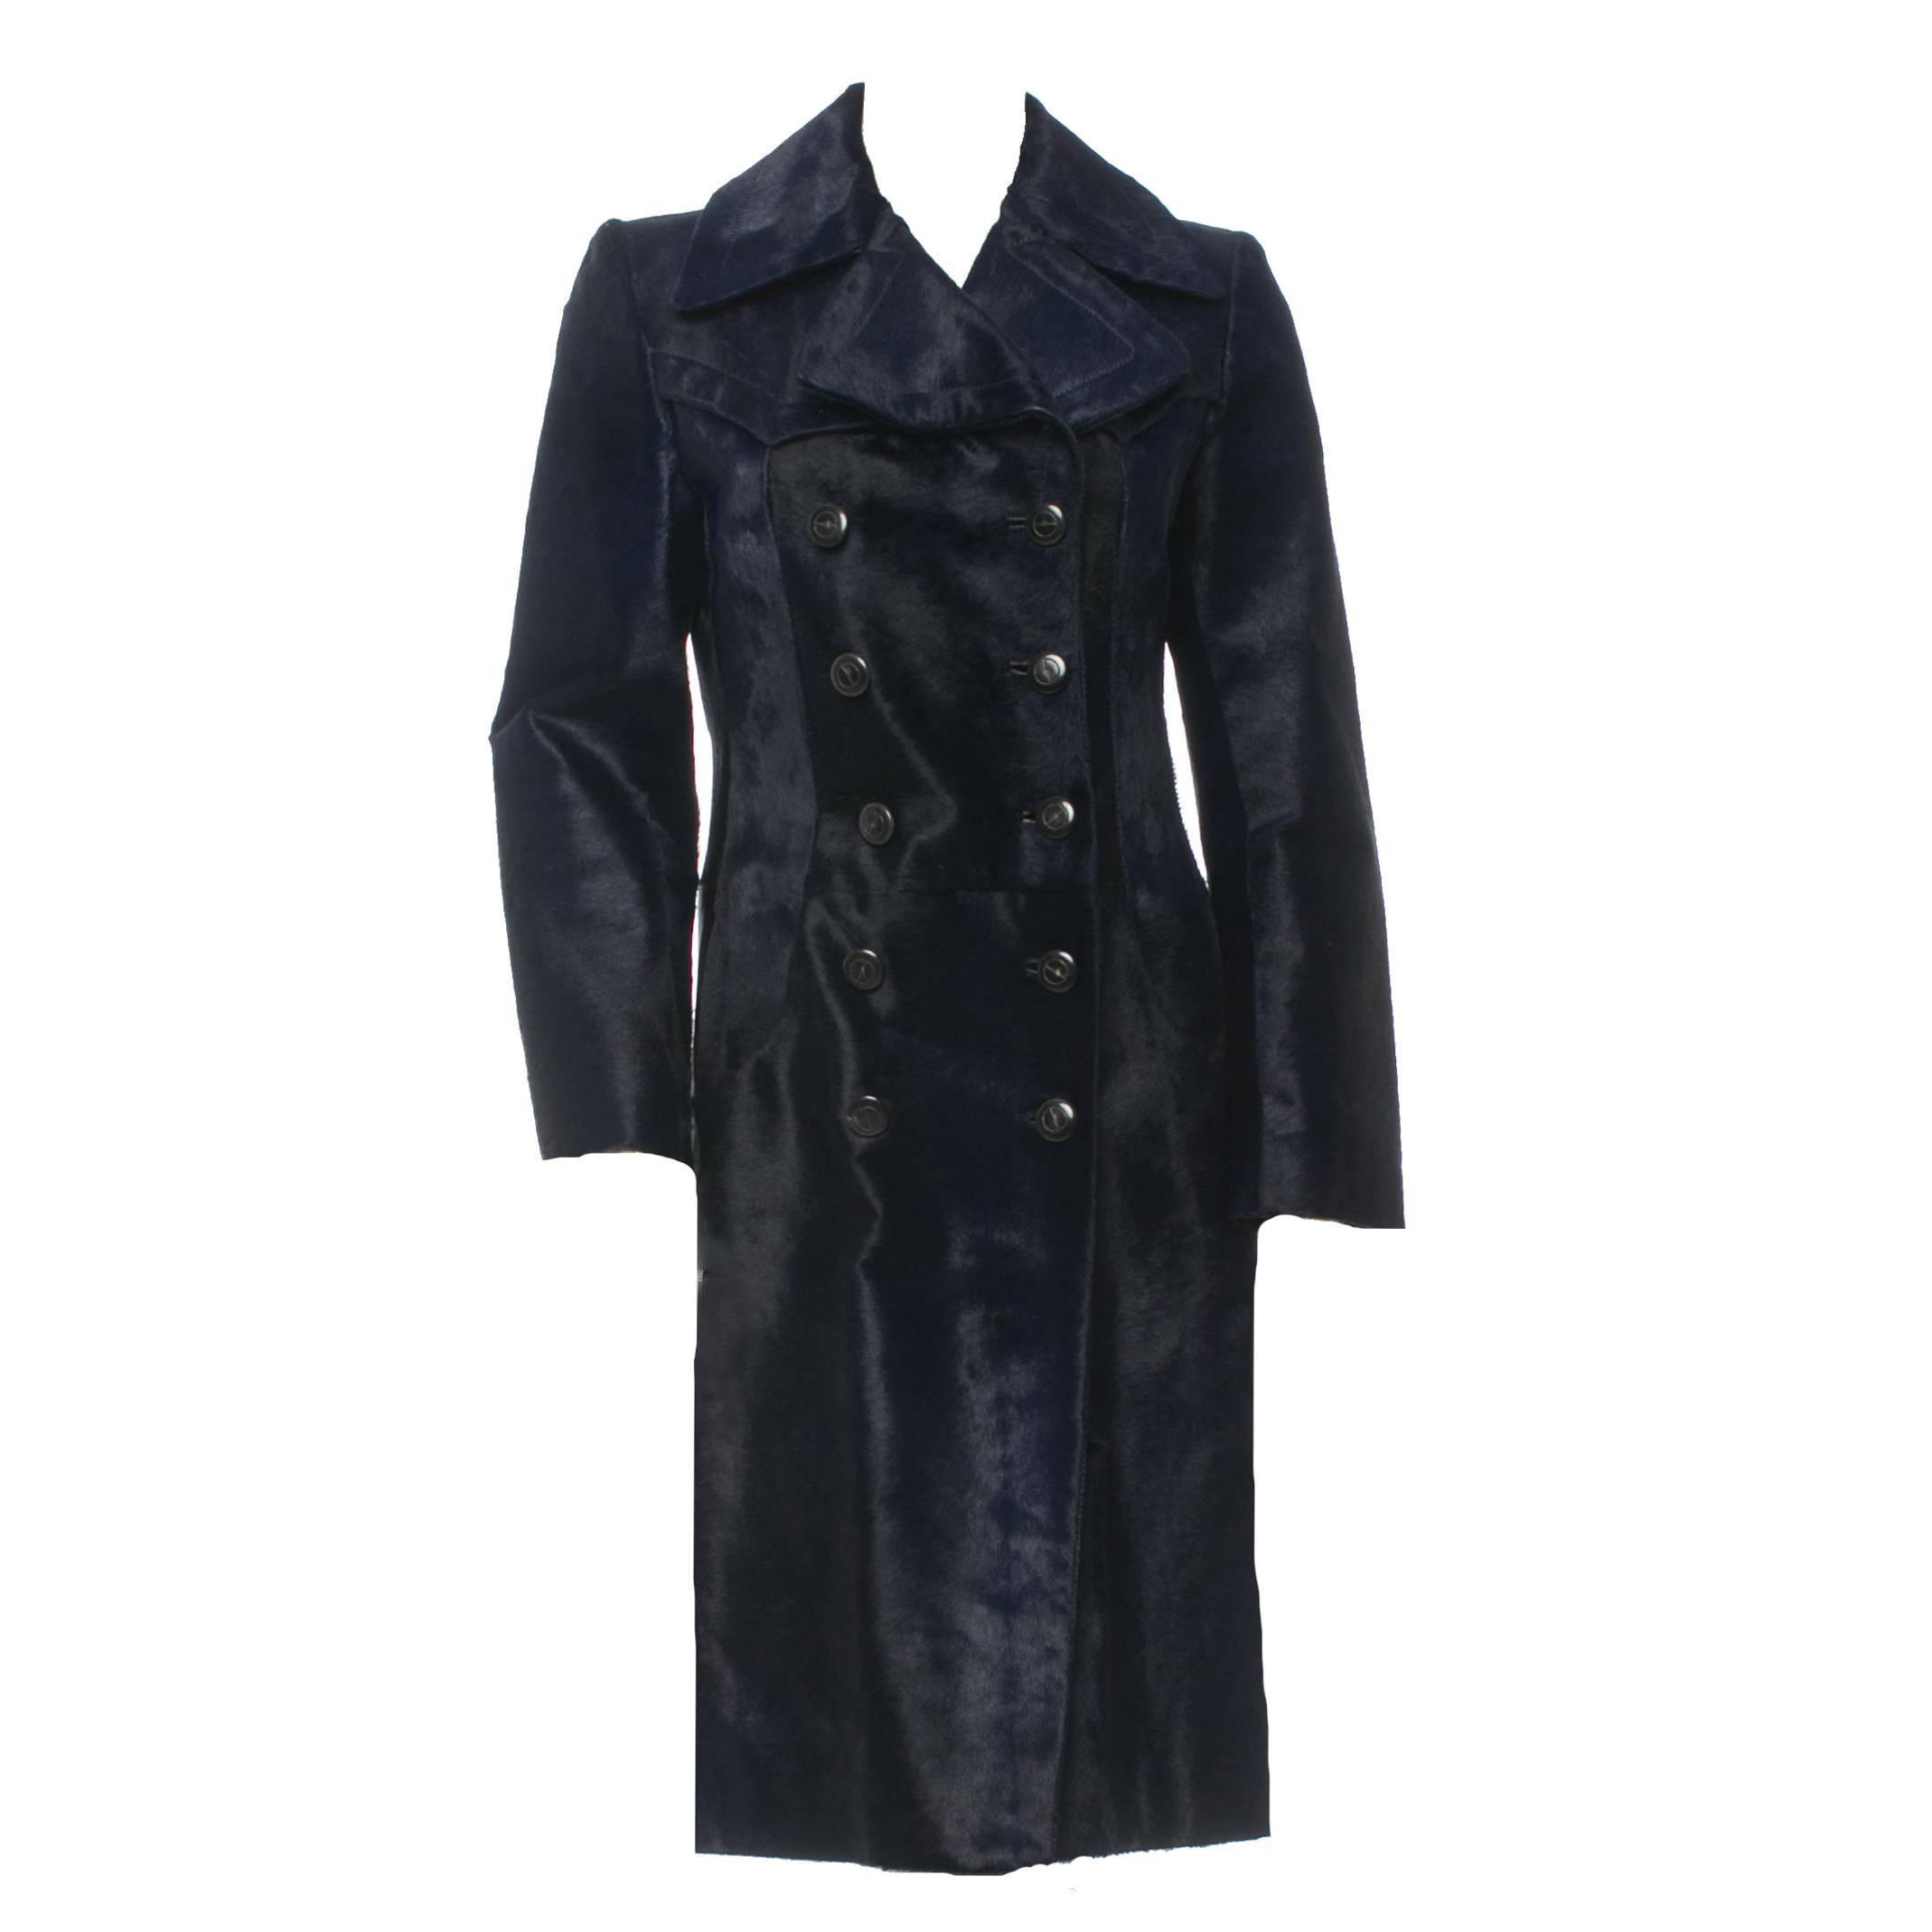 A/W 1995 RARE GUCCI by TOM FORD FUR COAT